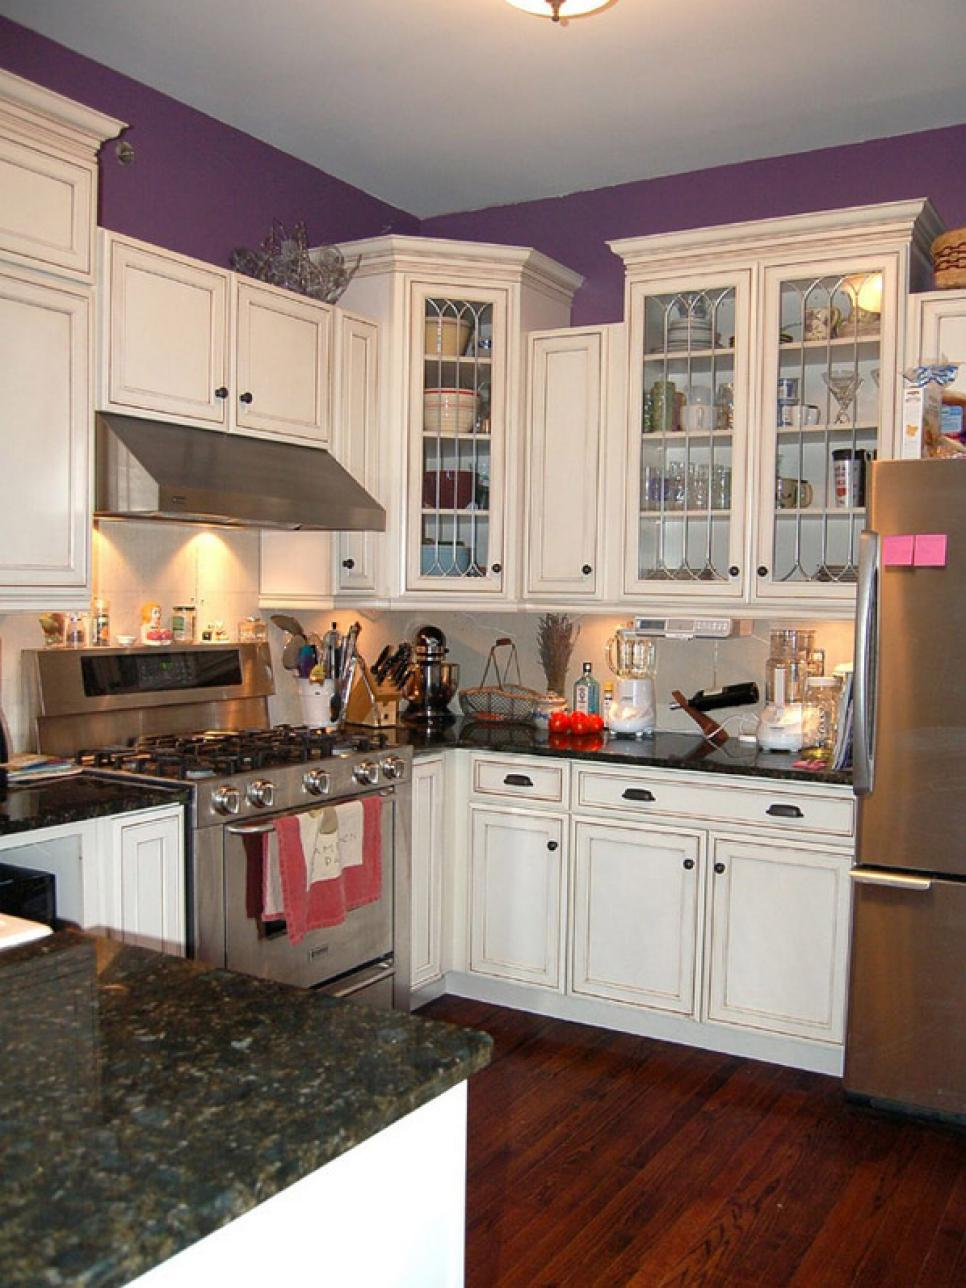 Small kitchen design ideas and solutions hgtv for Small kitchen models